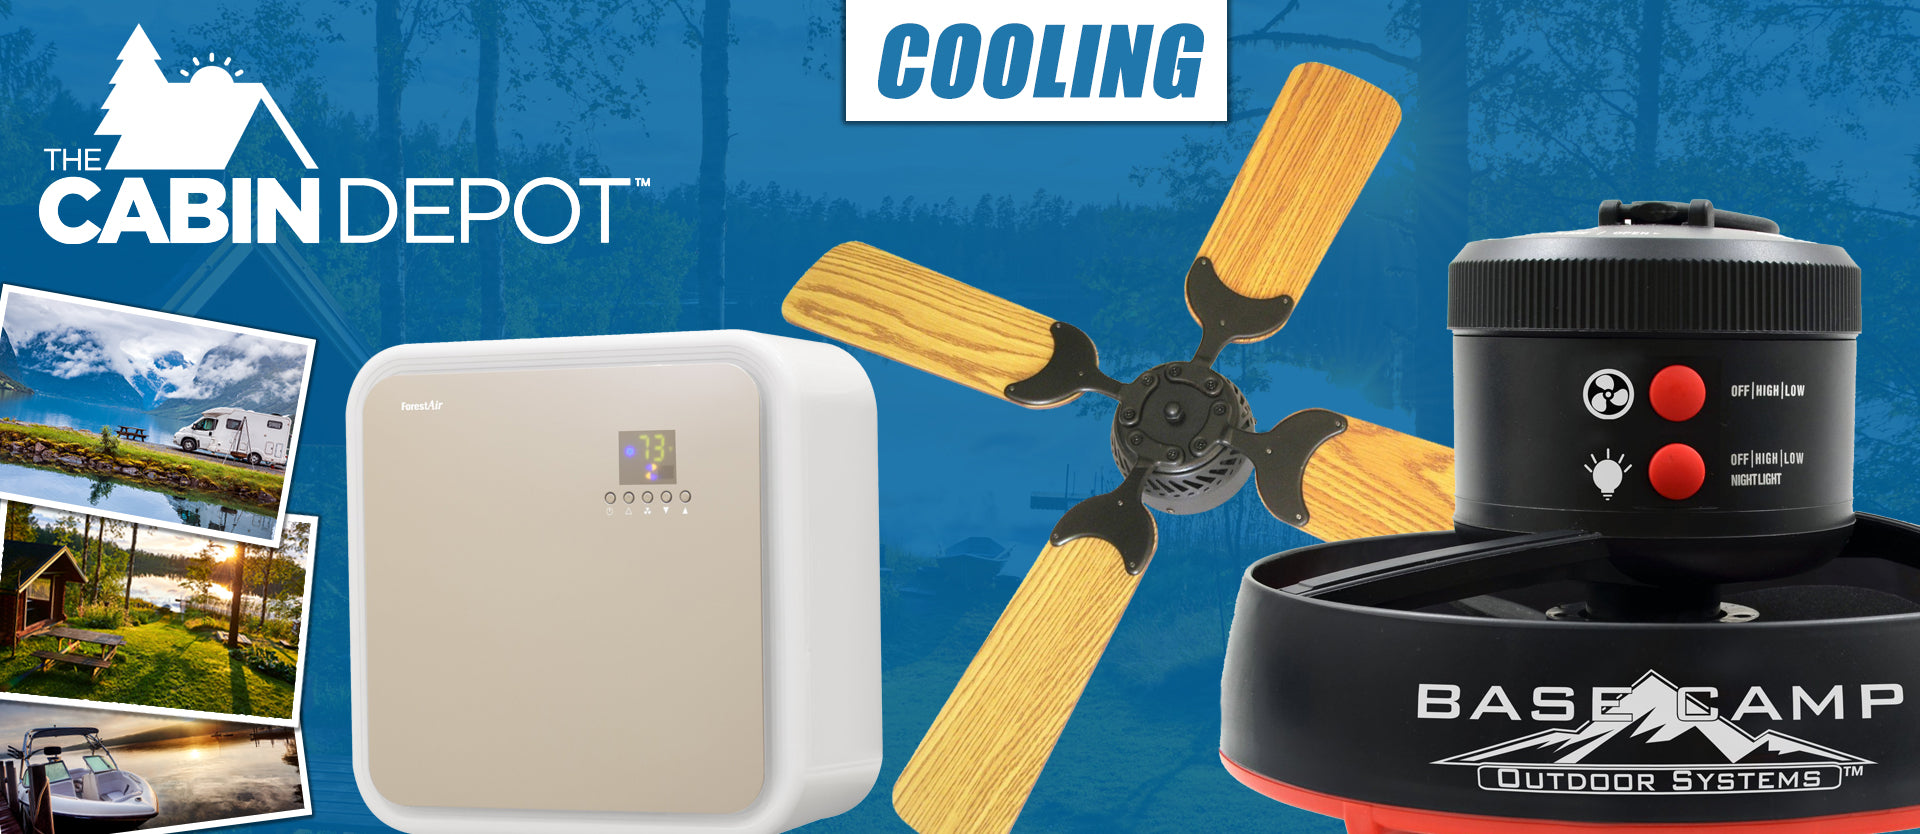 Cooling Fans The Cabin Depot ™ Canada